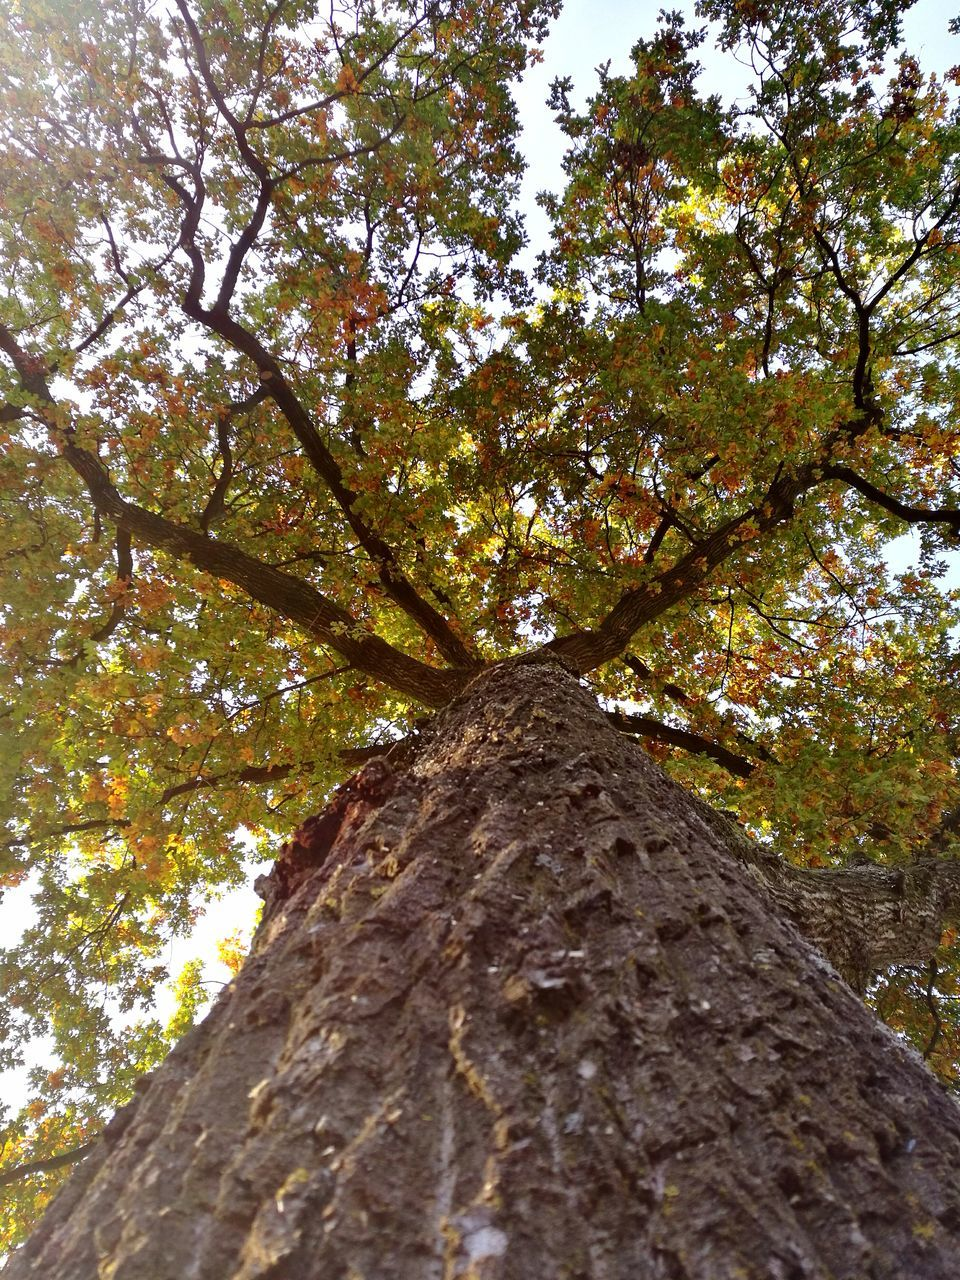 tree, low angle view, tree trunk, nature, growth, branch, beauty in nature, outdoors, day, no people, autumn, tranquility, sky, close-up, freshness